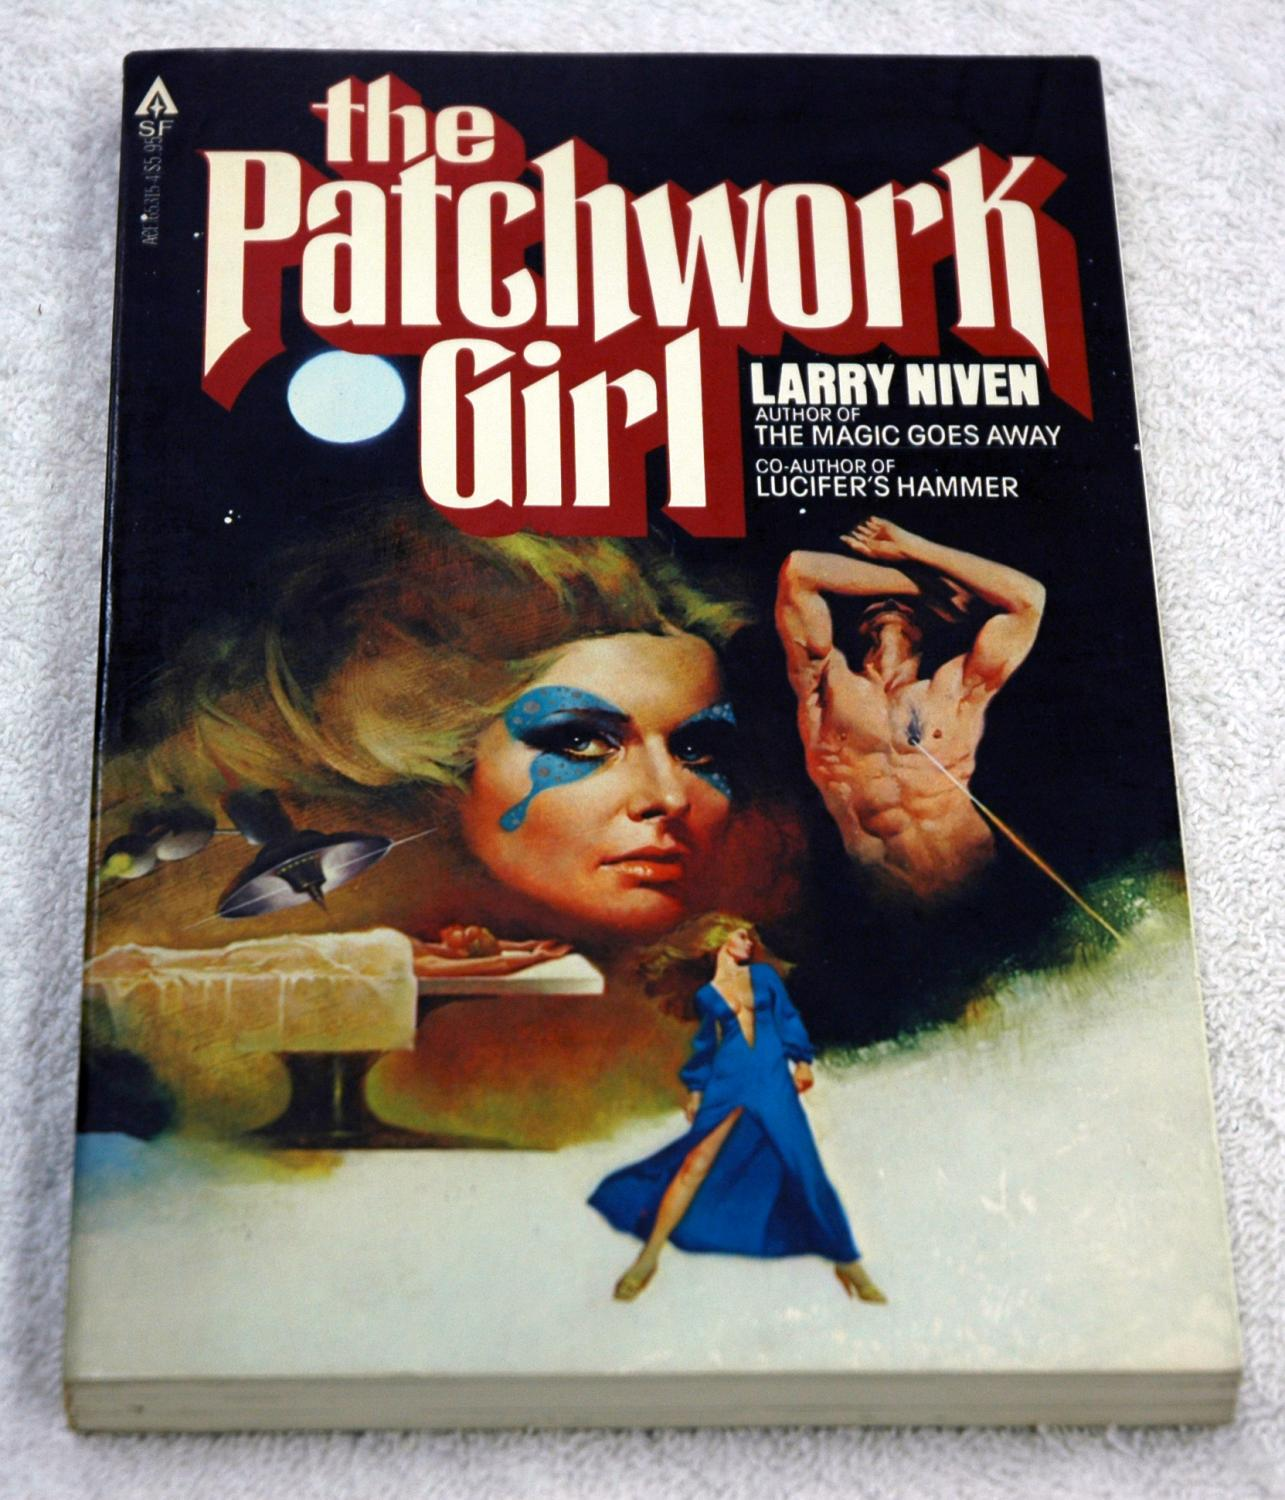 The Patchwork Girl (Signed) - Larry Niven